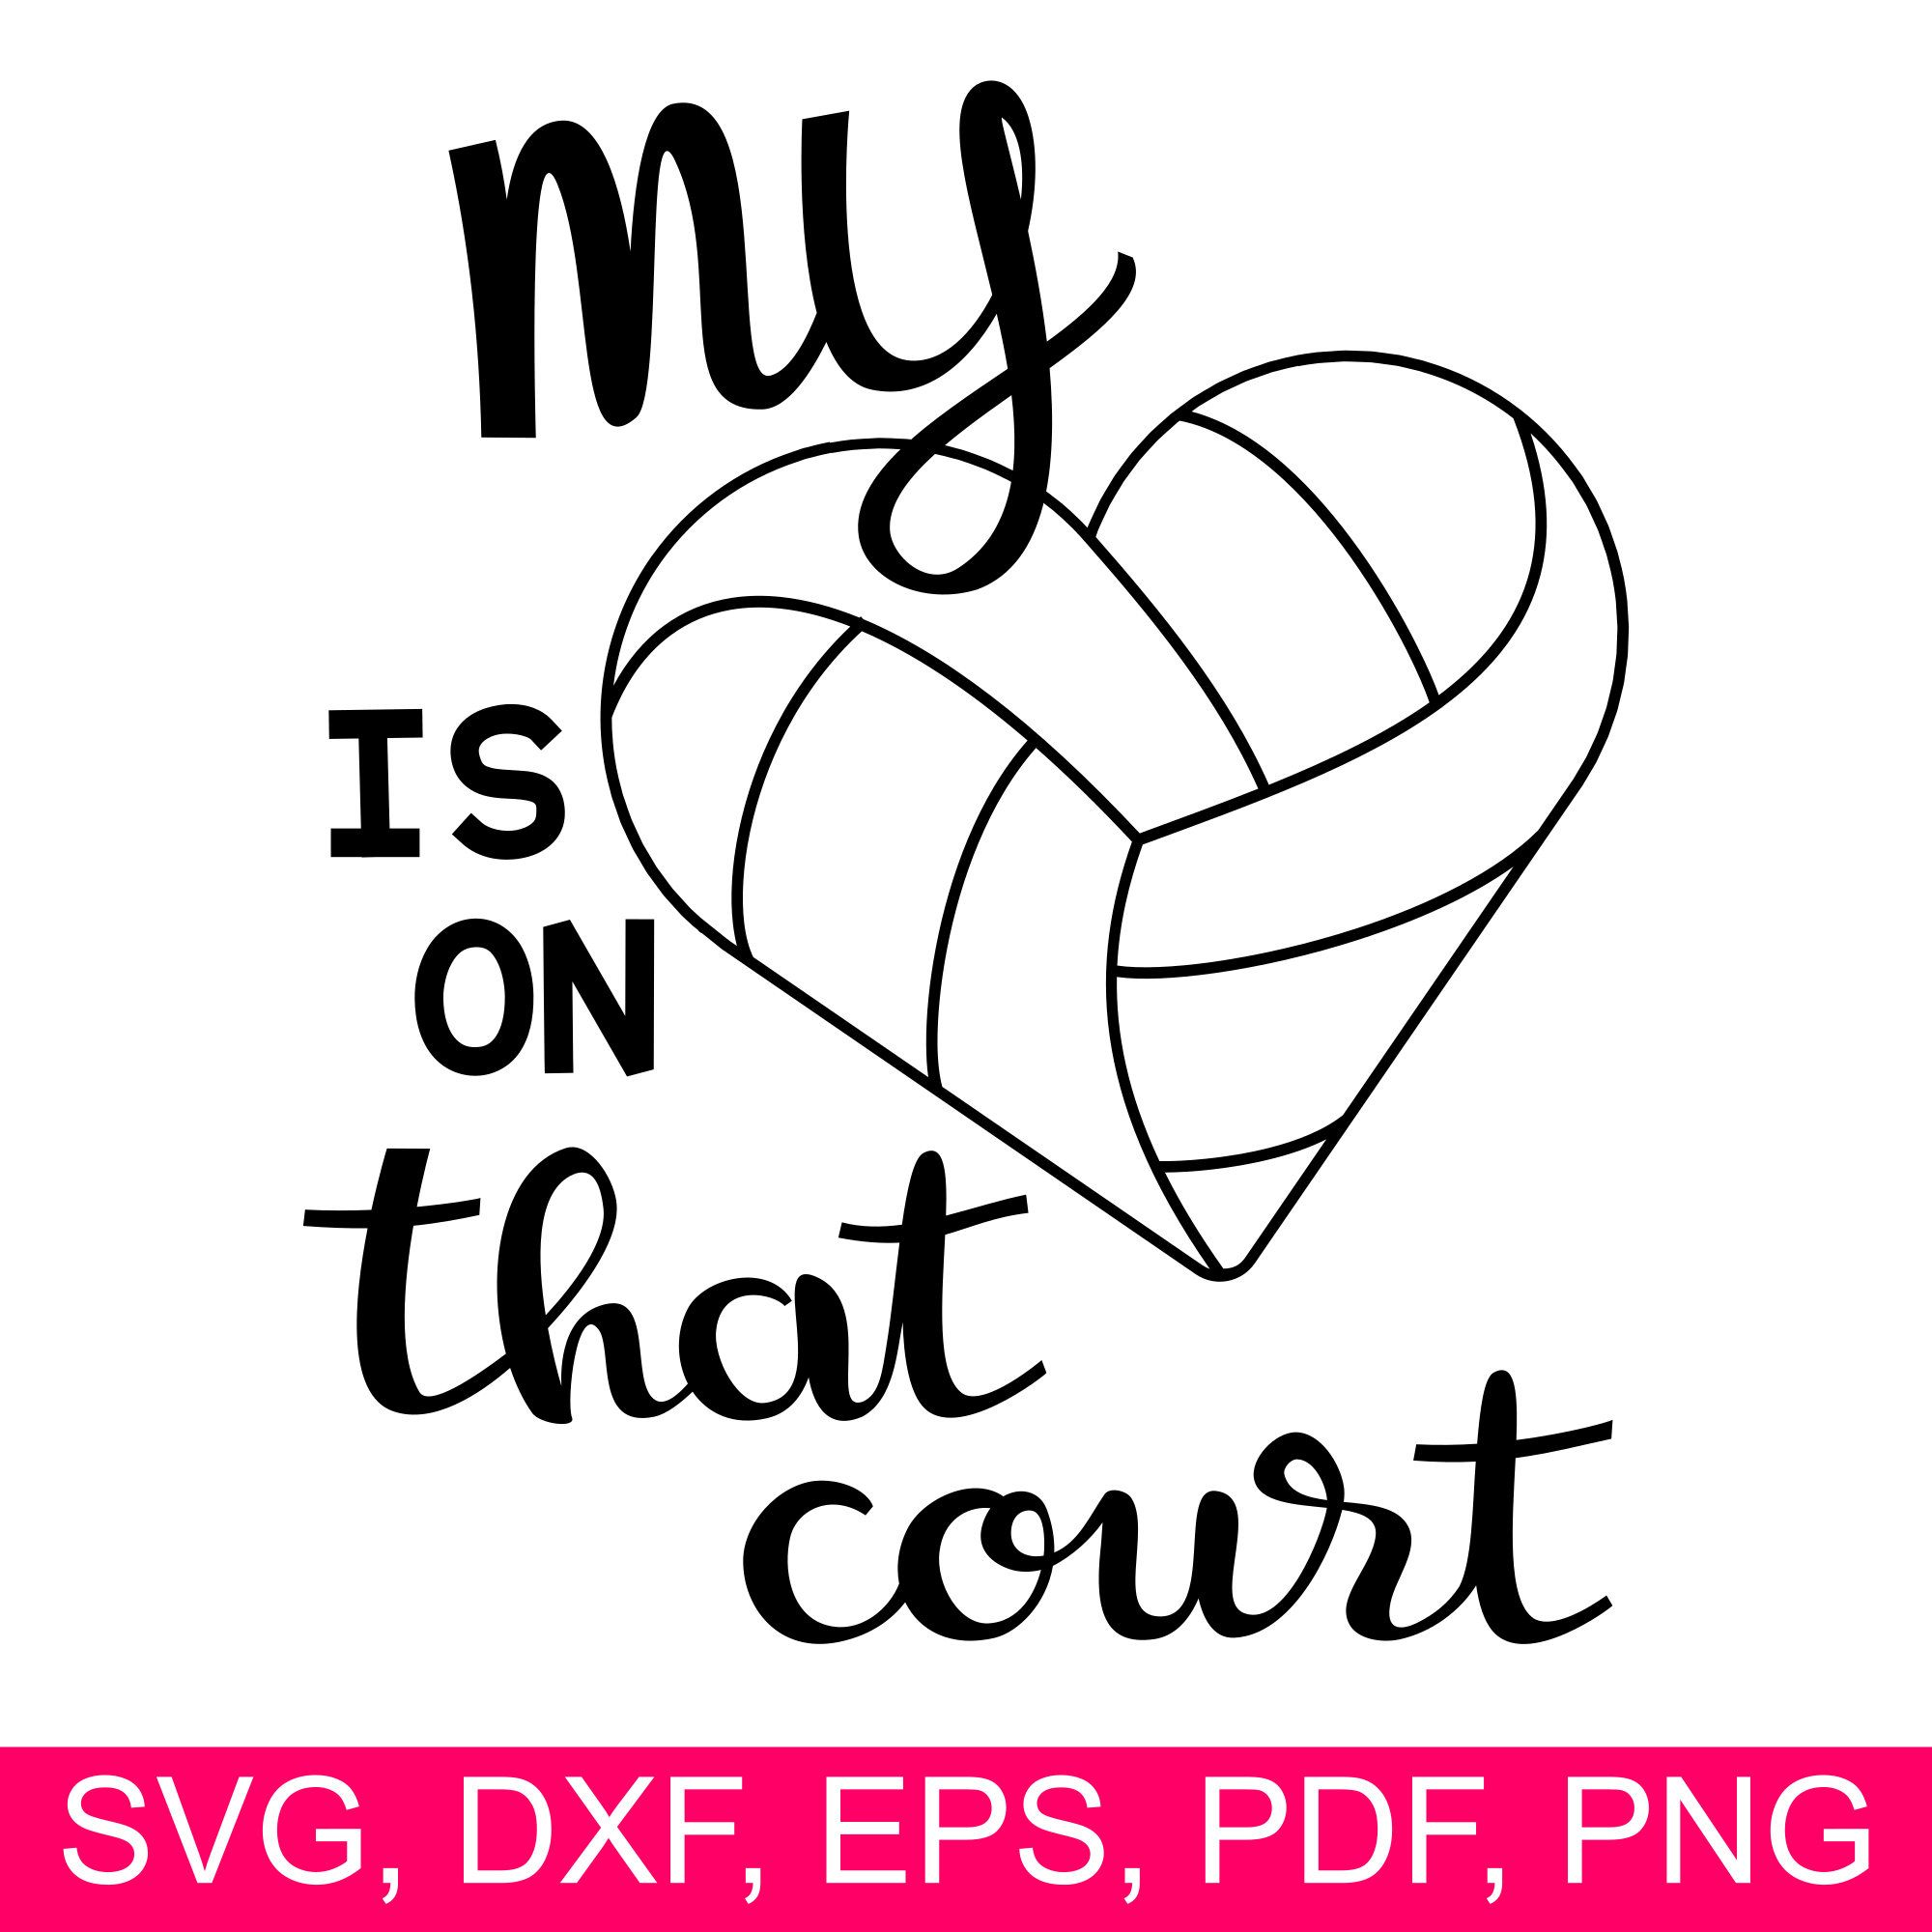 Volleyball My Heart is on that court SVG file for Cricut